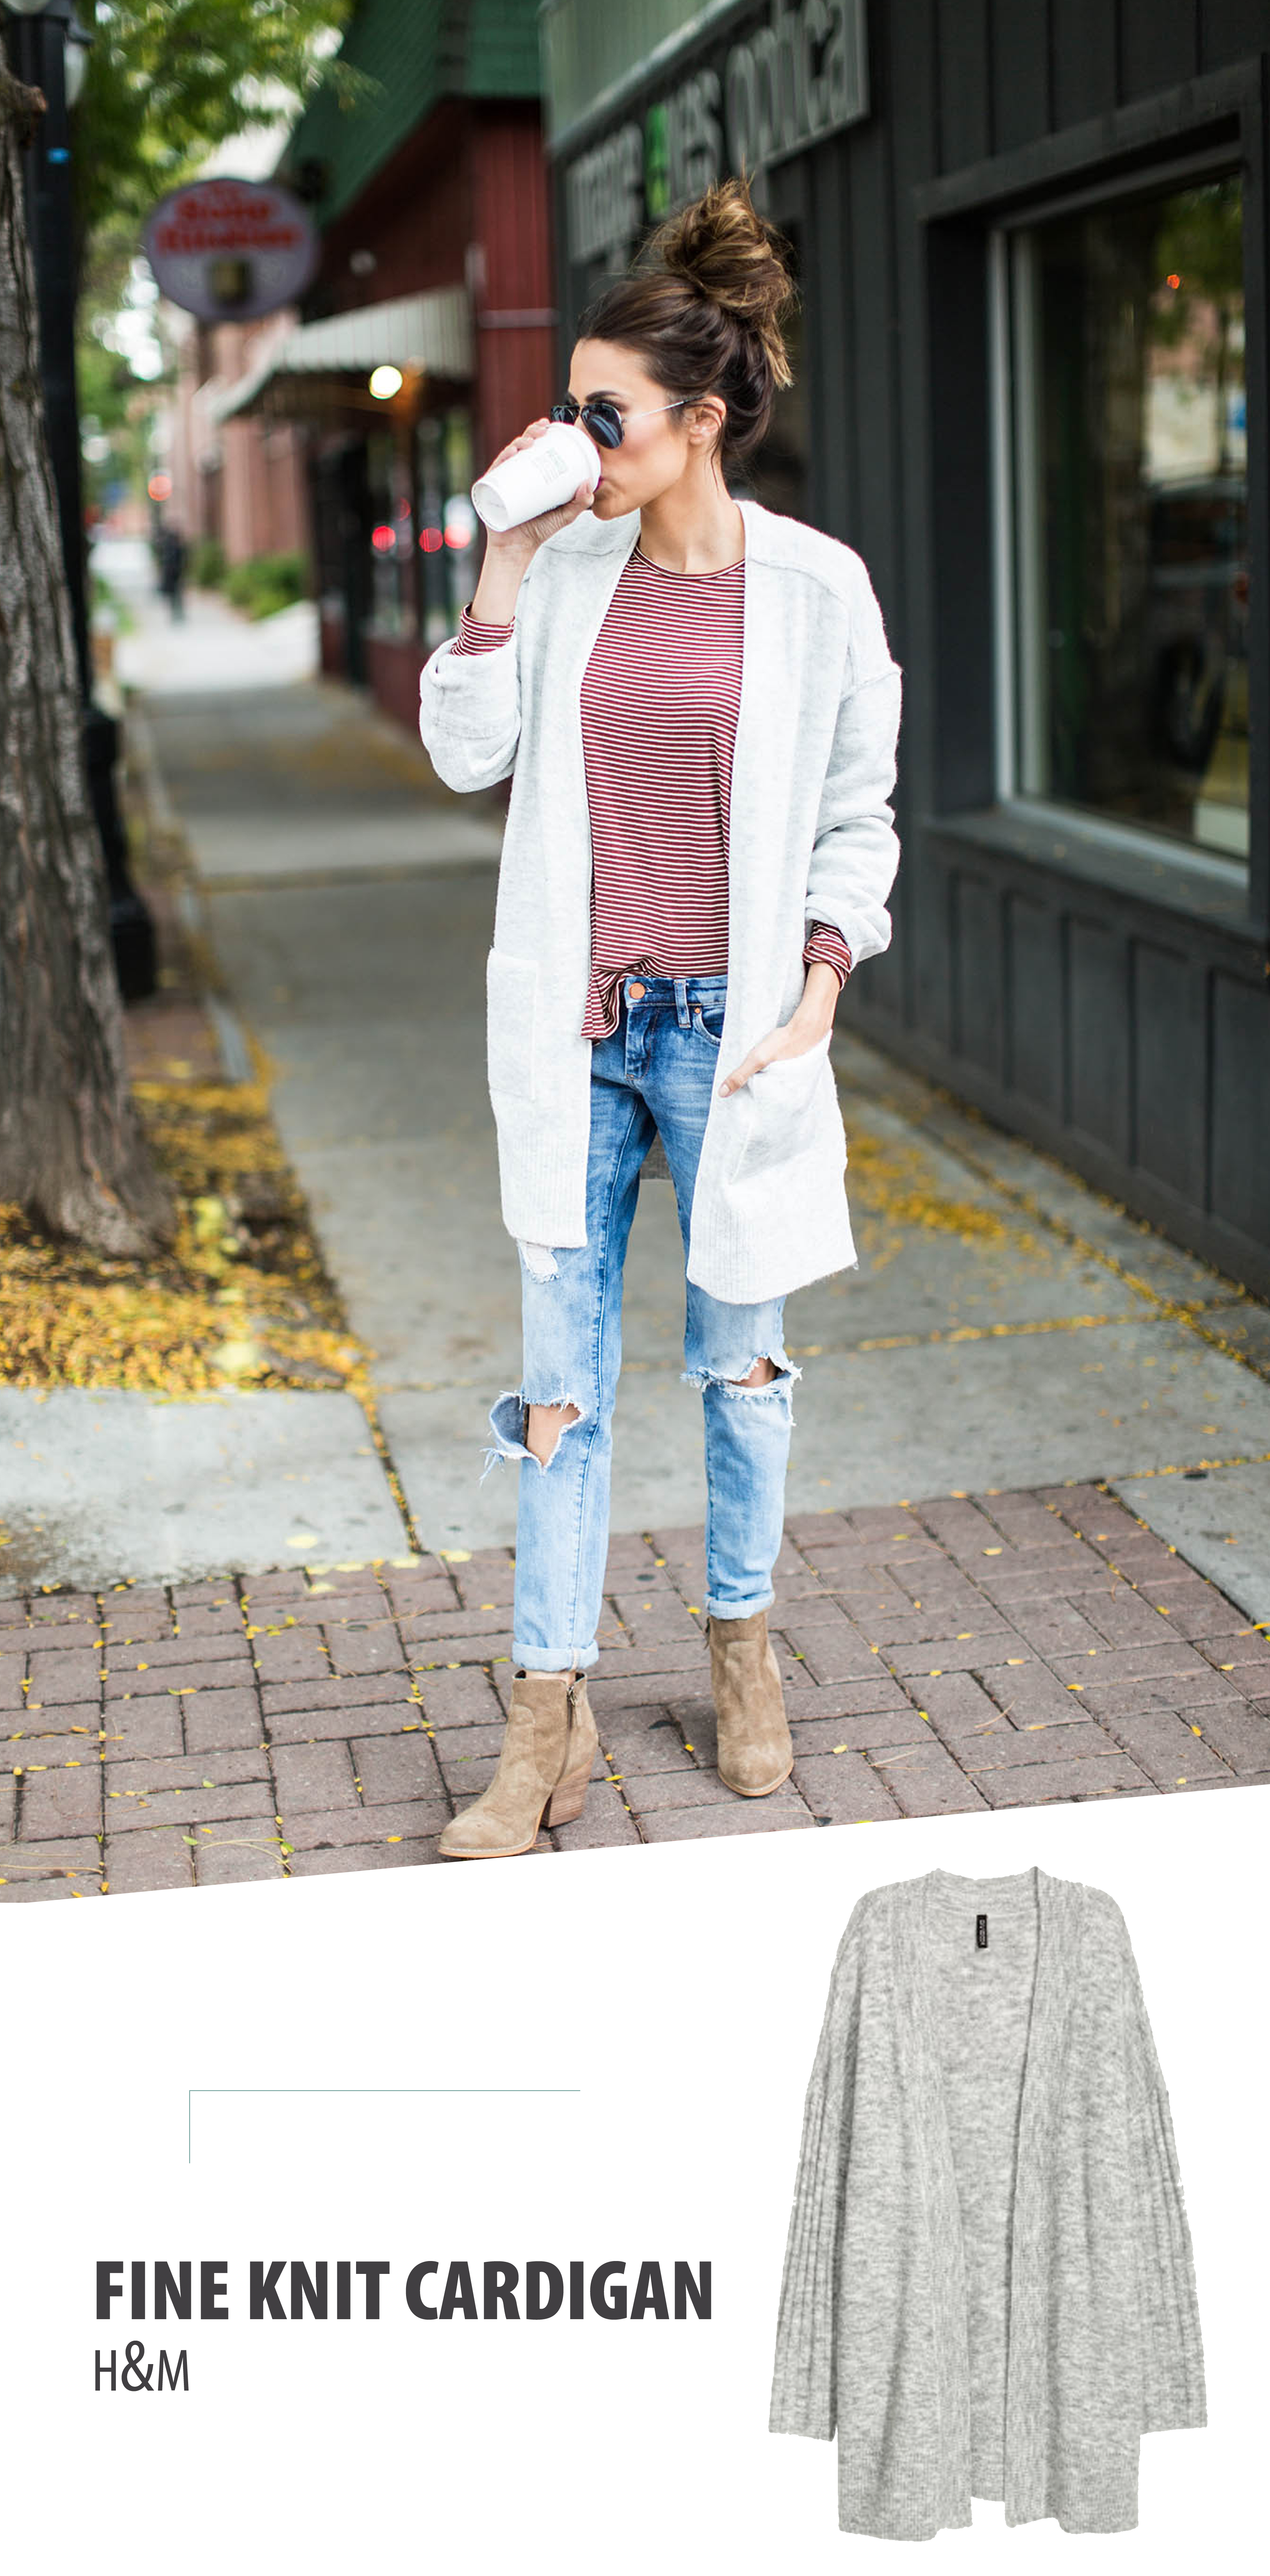 How to style extra long cardigans | Pick your shoes and go with it.